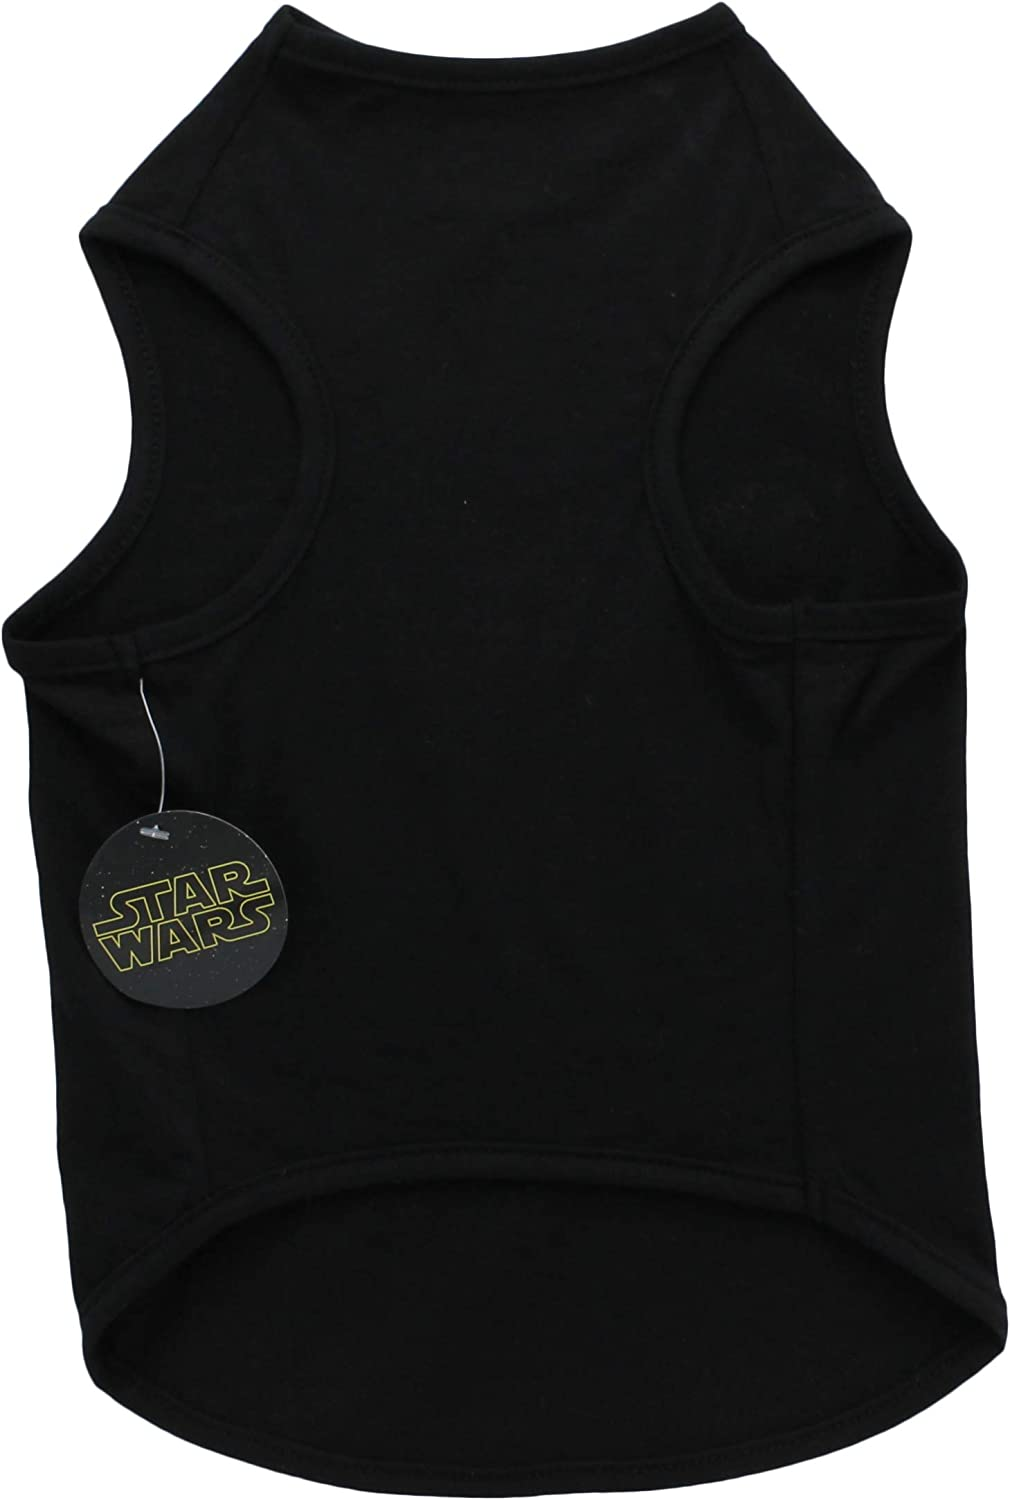 X-Large FF11869 Star Wars Dog Shirt for Large Dogs Star Wars for Pets Black /& Yellow Logo Dog Tank